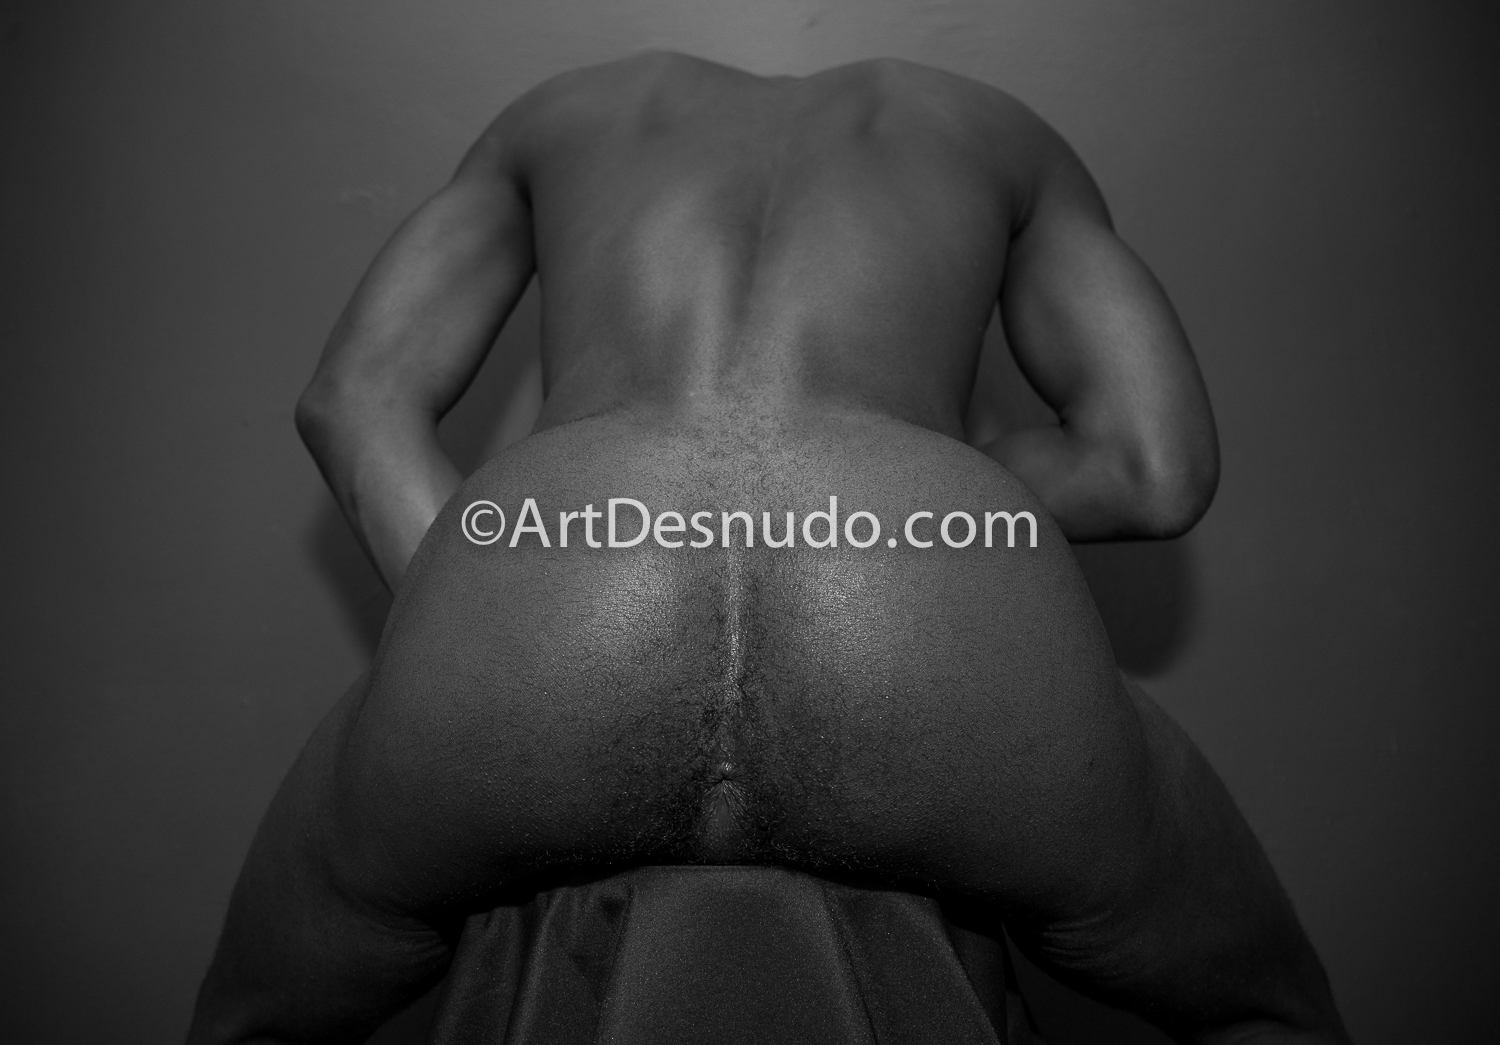 ArtDesnudo.com - Erotic nude photography in NYC (Brooklyn, Bronx, Staten Island, Queens, Manhattan).